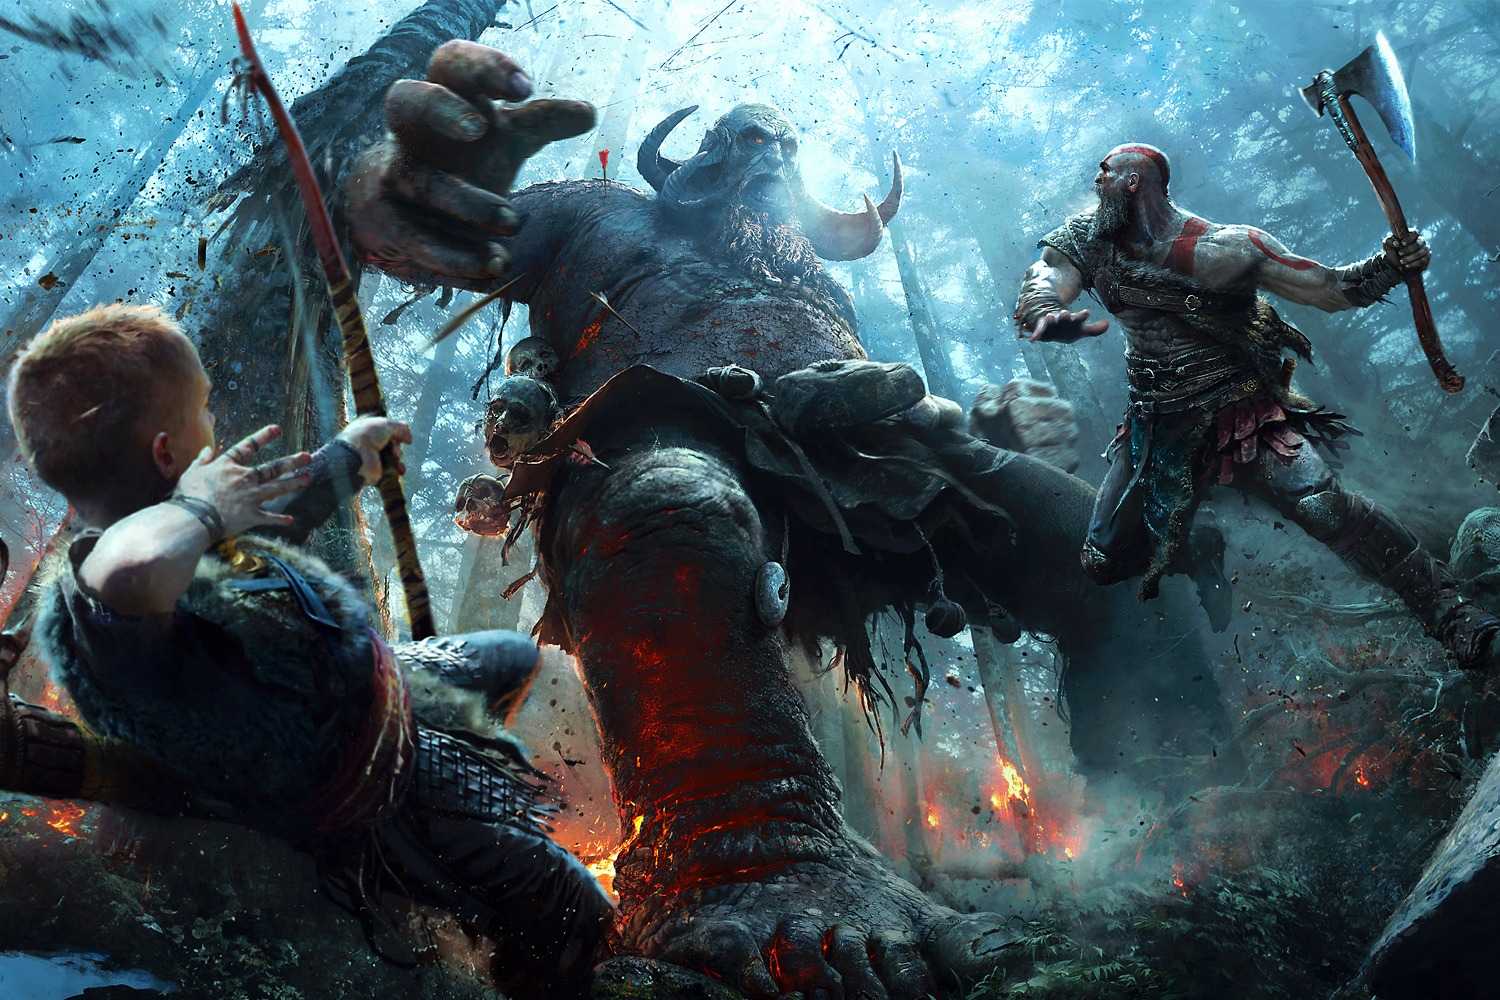 Era que no: God of War rompe récord de ventas en PlayStation 4